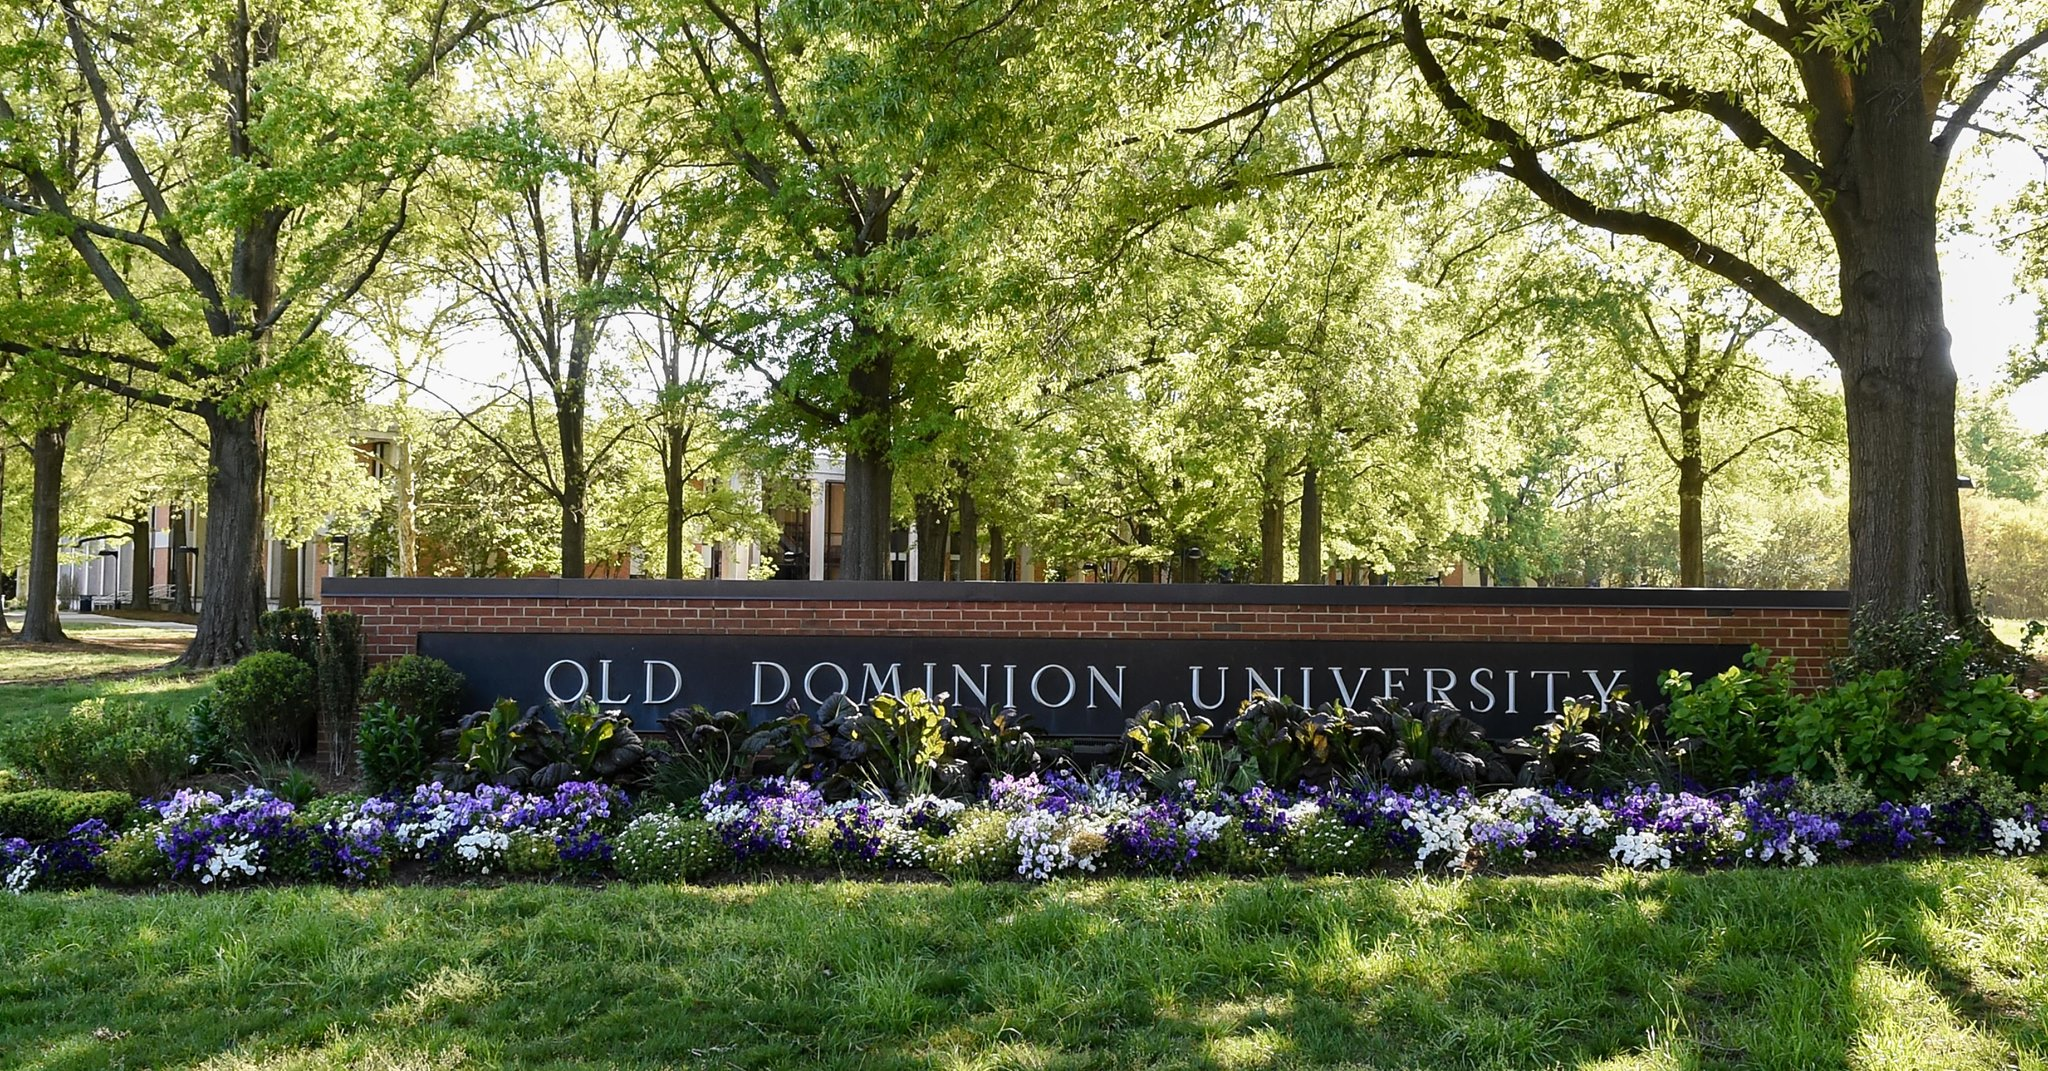 Odu 2021 Calendar Old Dominion University named among nation's top universities in